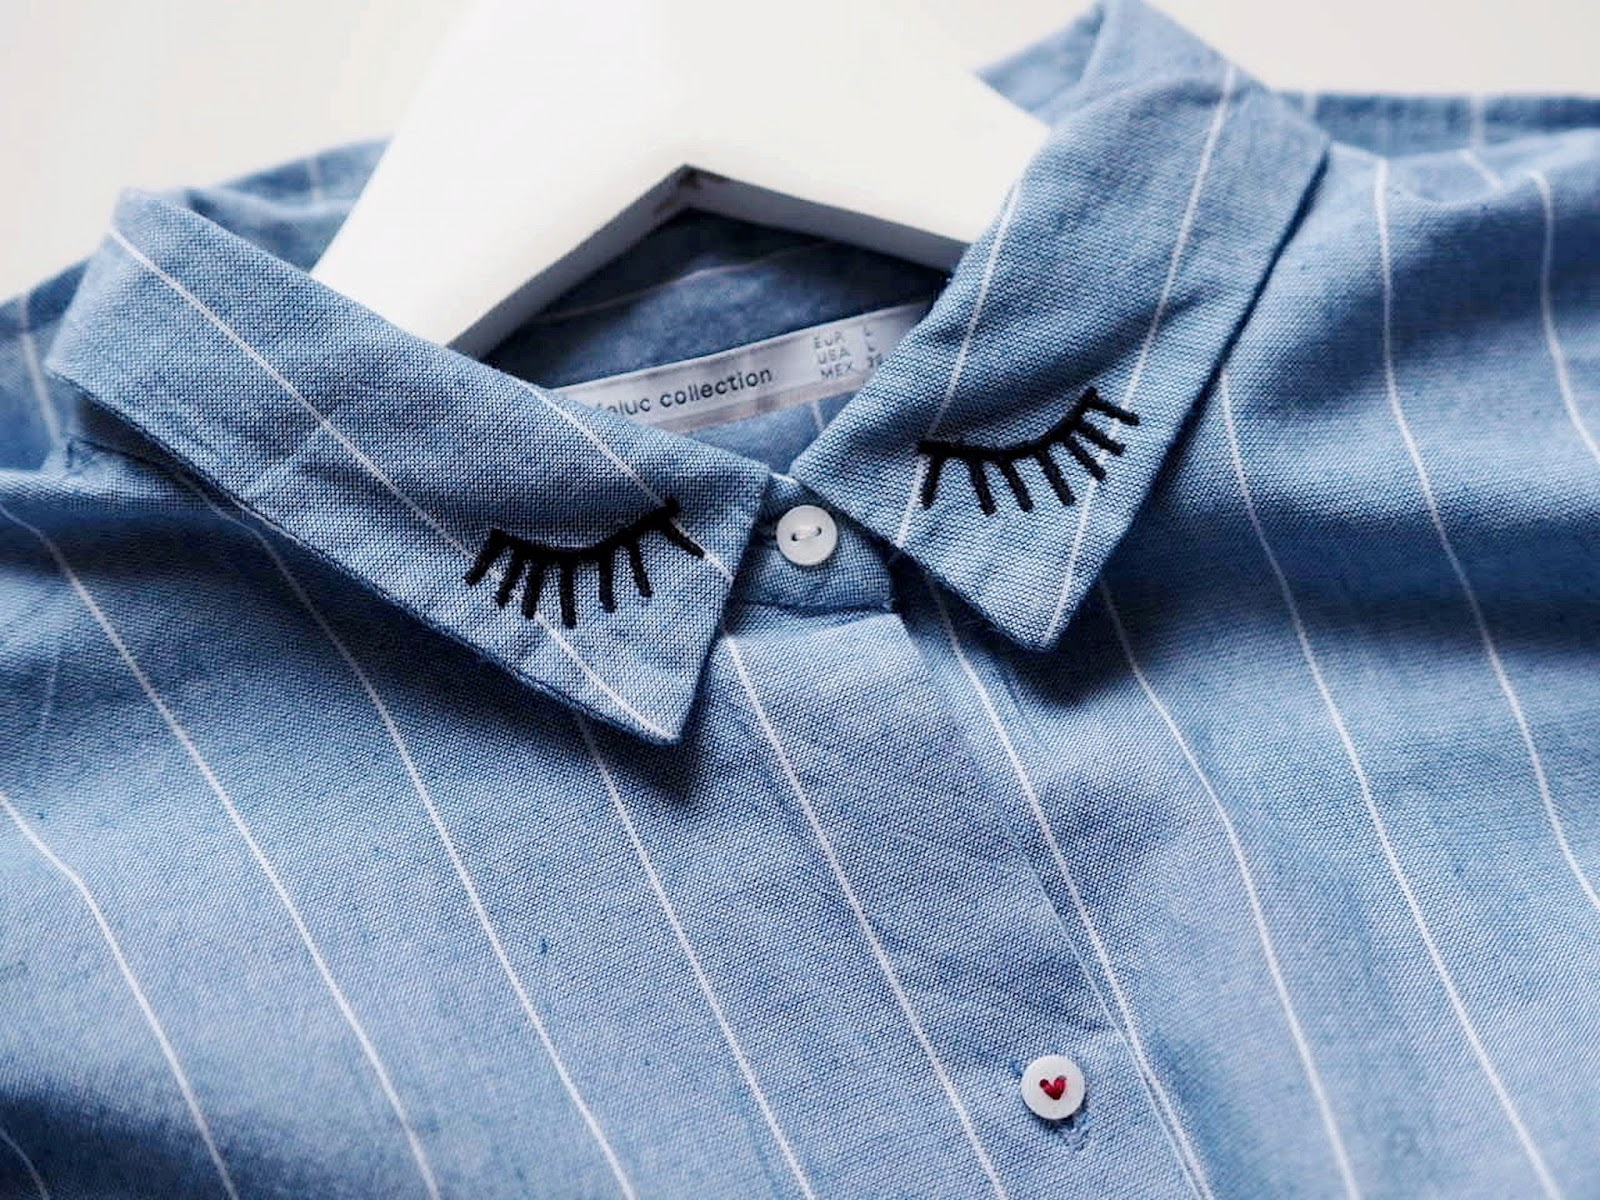 shirt with eye details on the collar